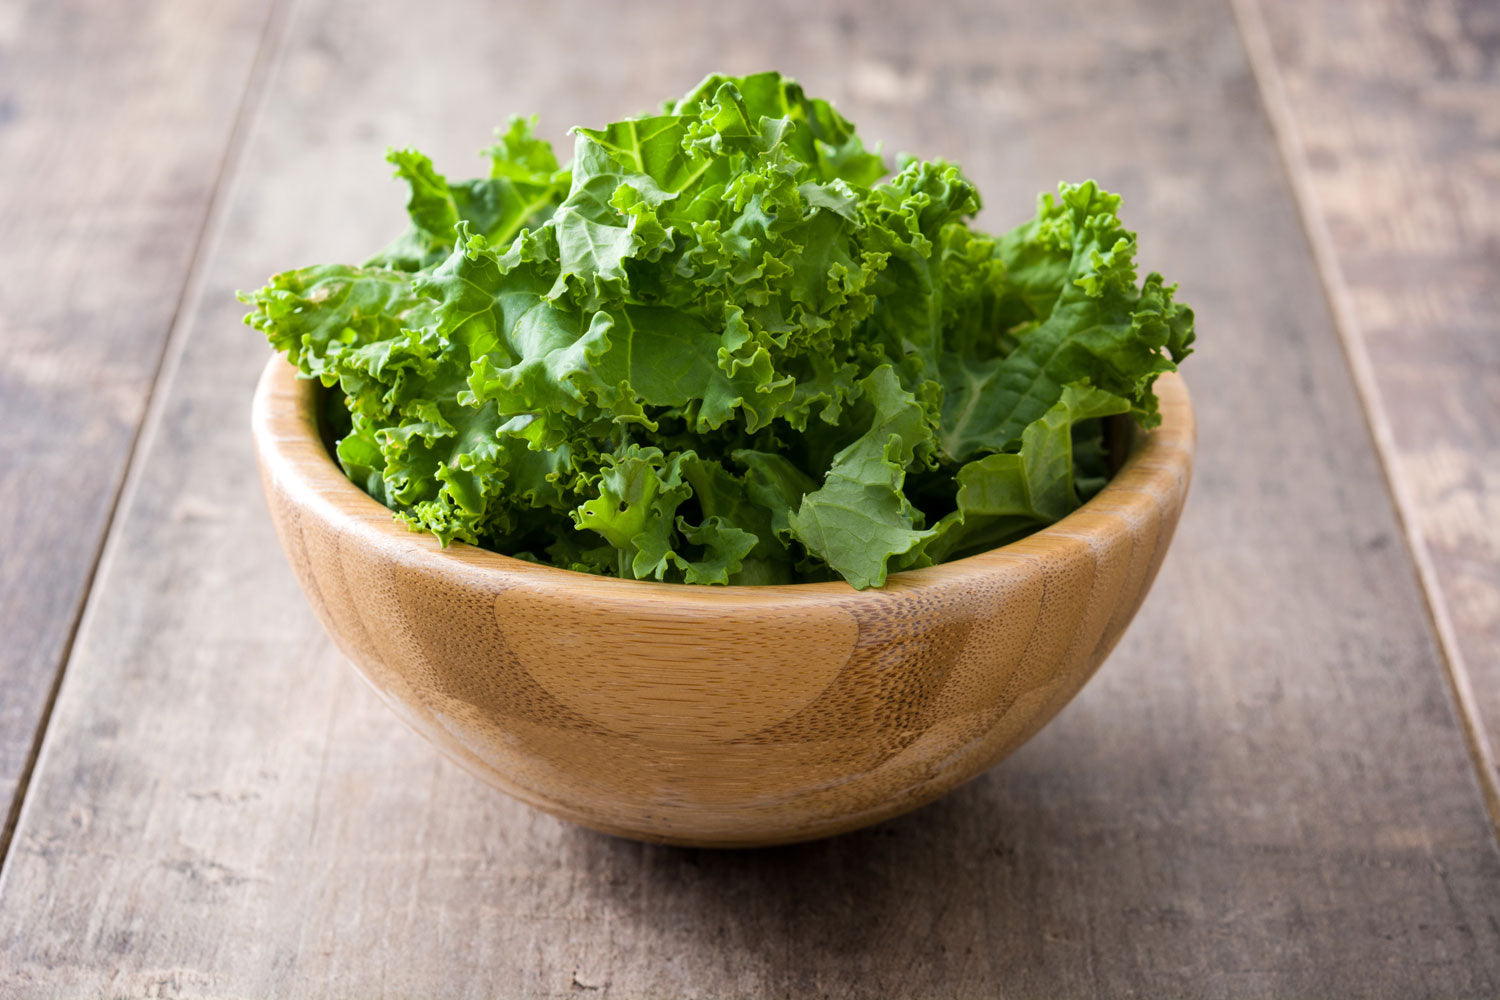 5 Reasons To Eat More Kale